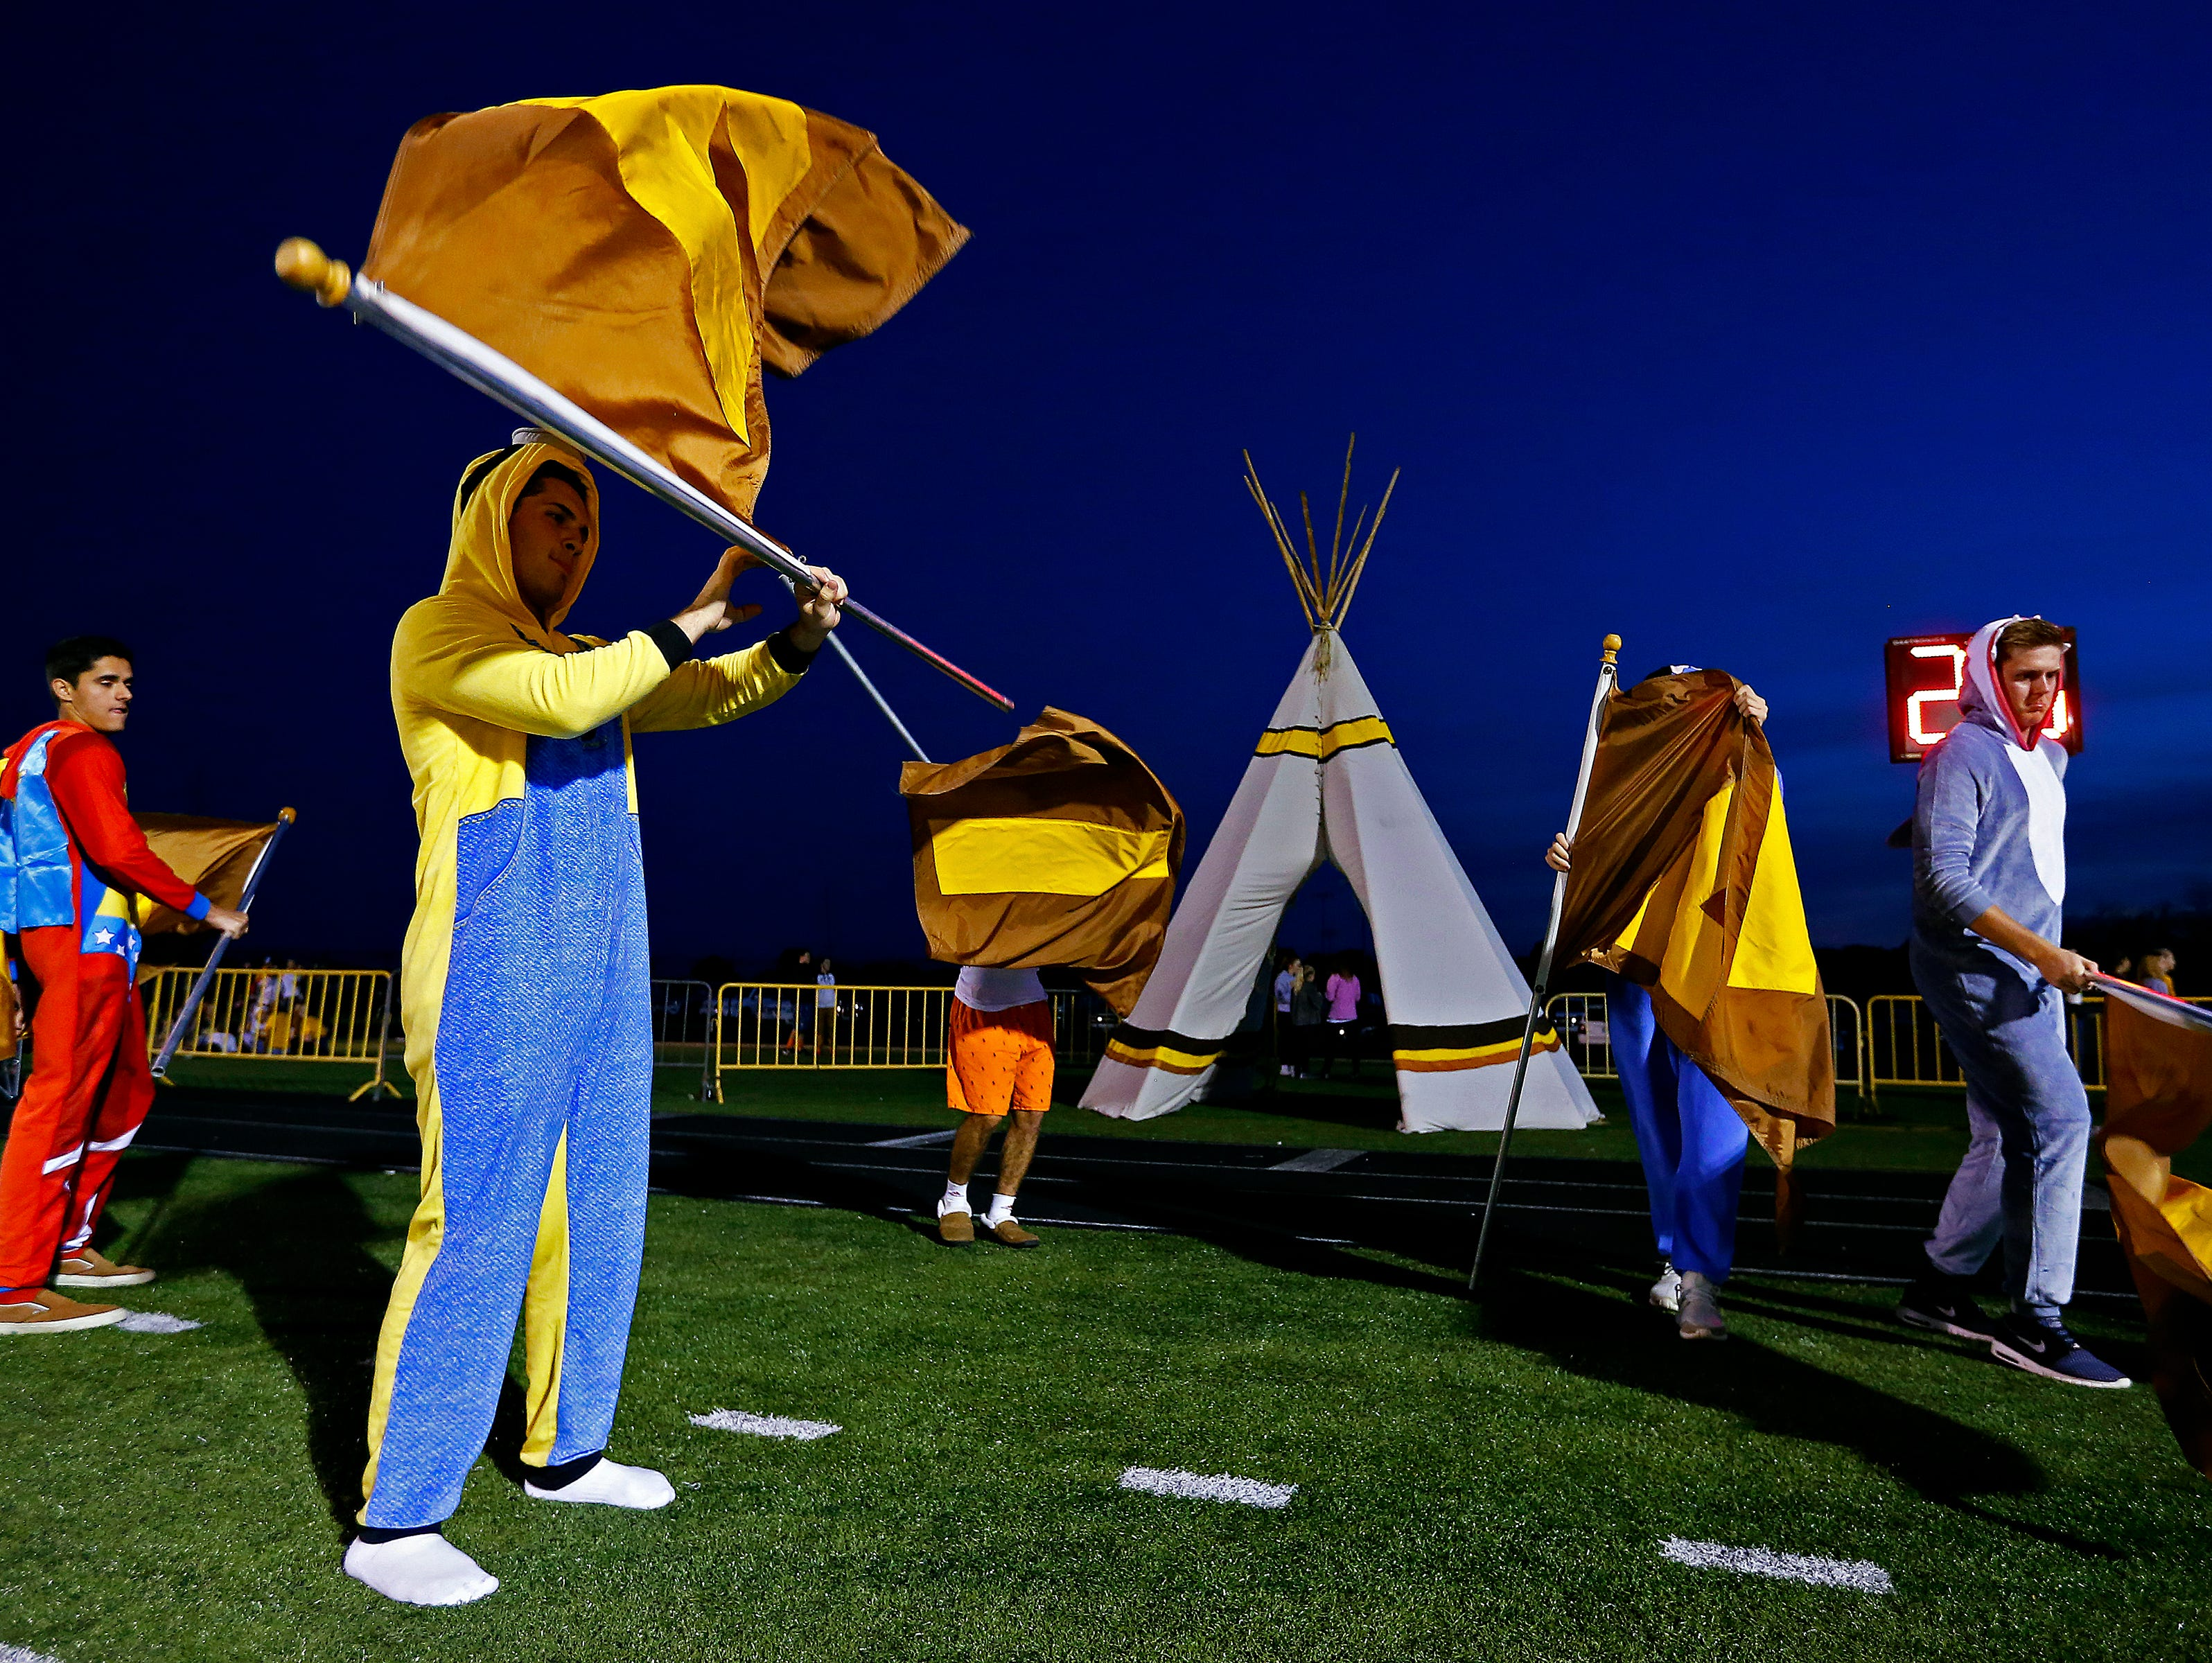 Kickapoo High School students wait for the team's entrance to the field prior to the start of the Class 6 playoff game between Rockhurst High School and Kickapoo High School played at Pottenger Stadium in Springfield, Mo. on Oct. 28, 2016. The Rockhurst Hawklets won the game 26-3.